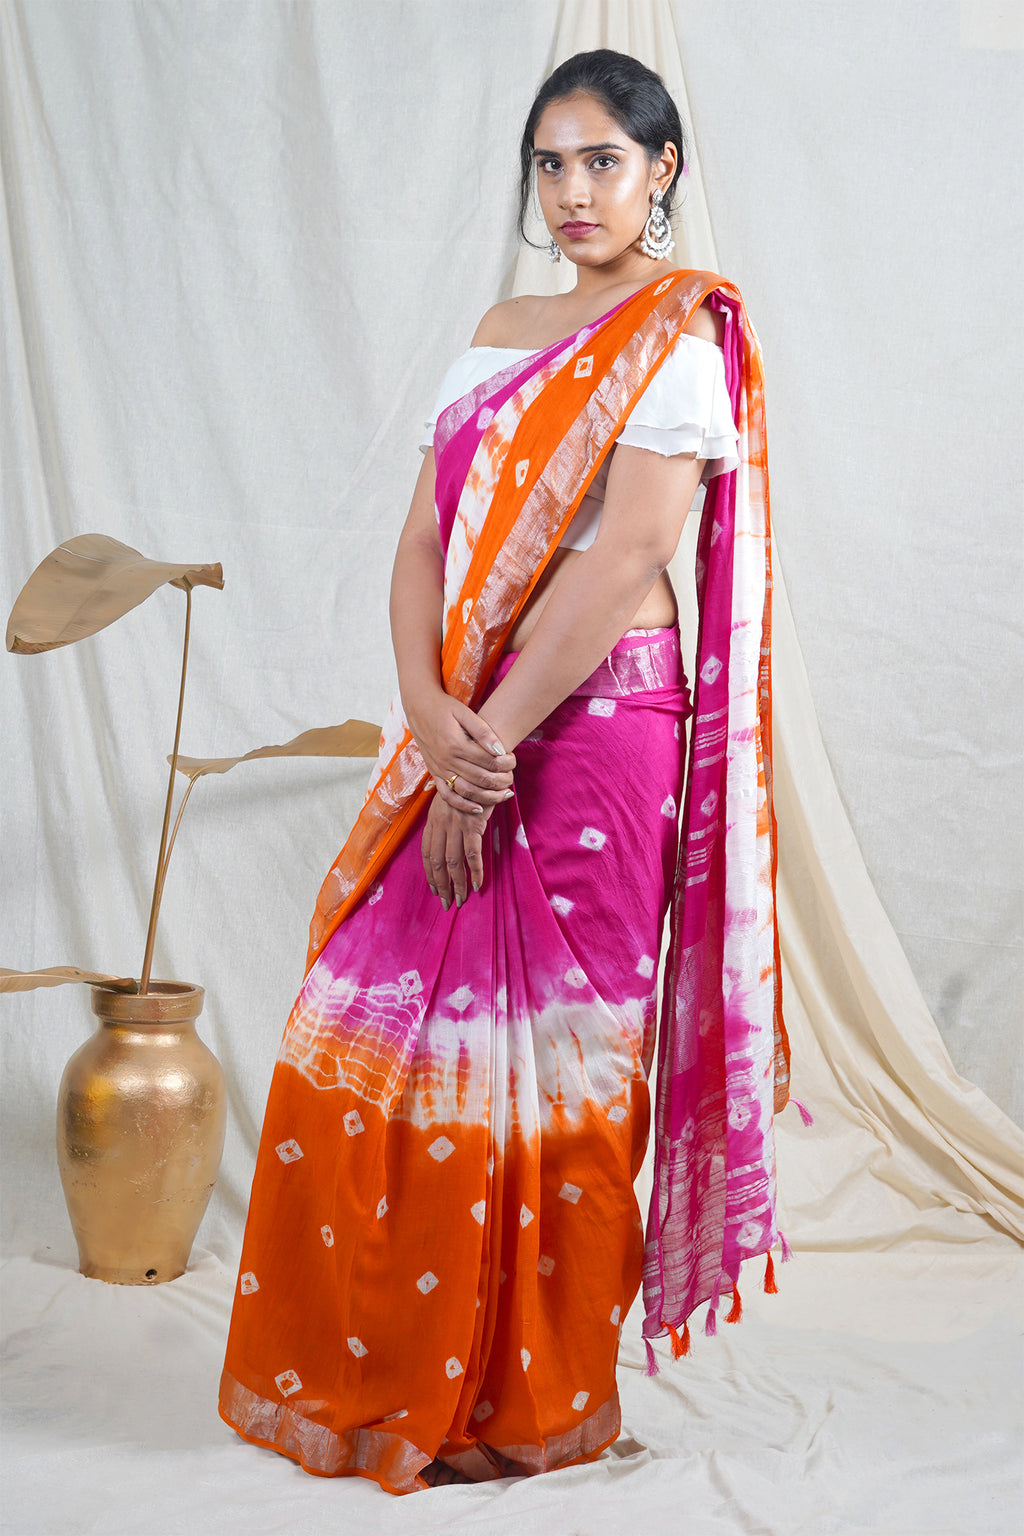 Teejh Paheli Orange and Pink Shibori Tie Dye Linen Silk Saree